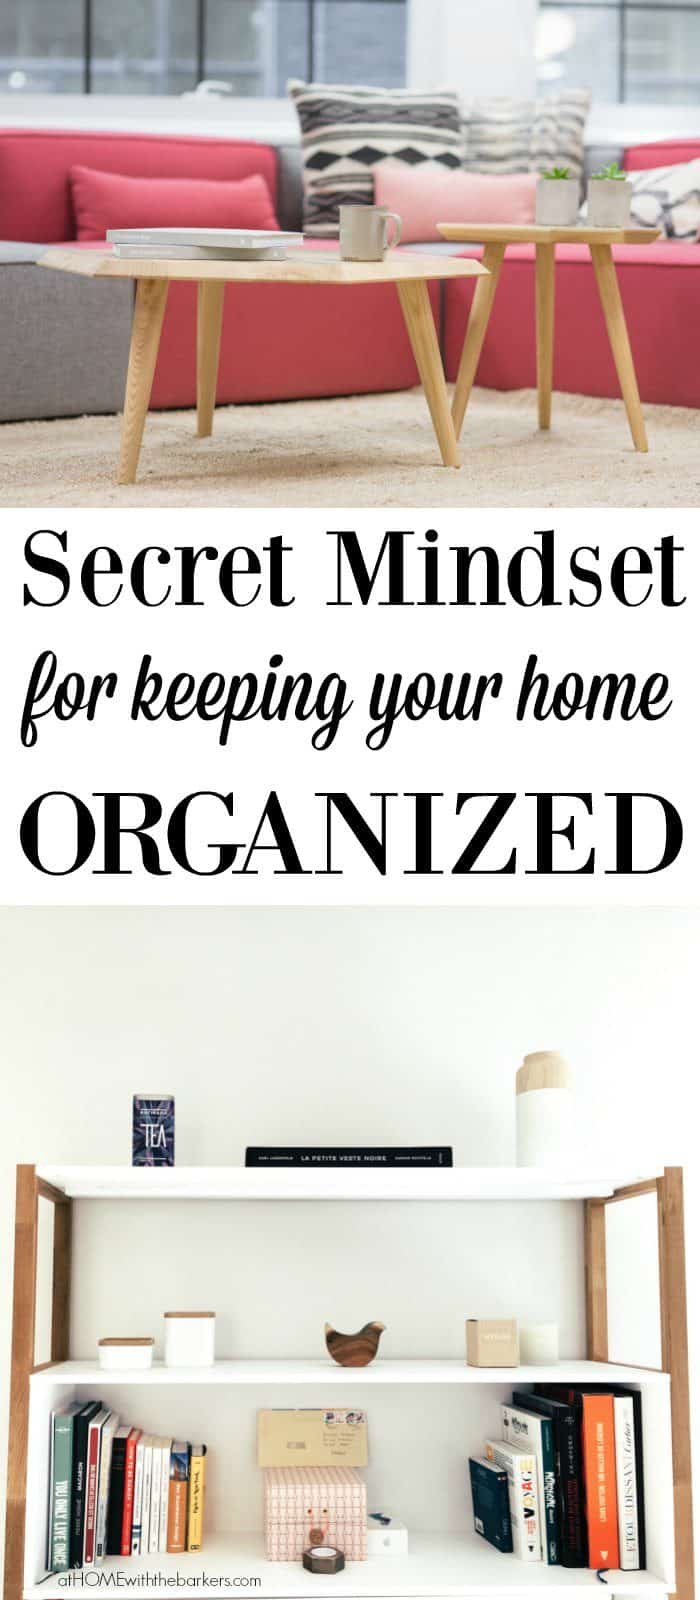 Secret Mindset for keeping your home Organized for good!